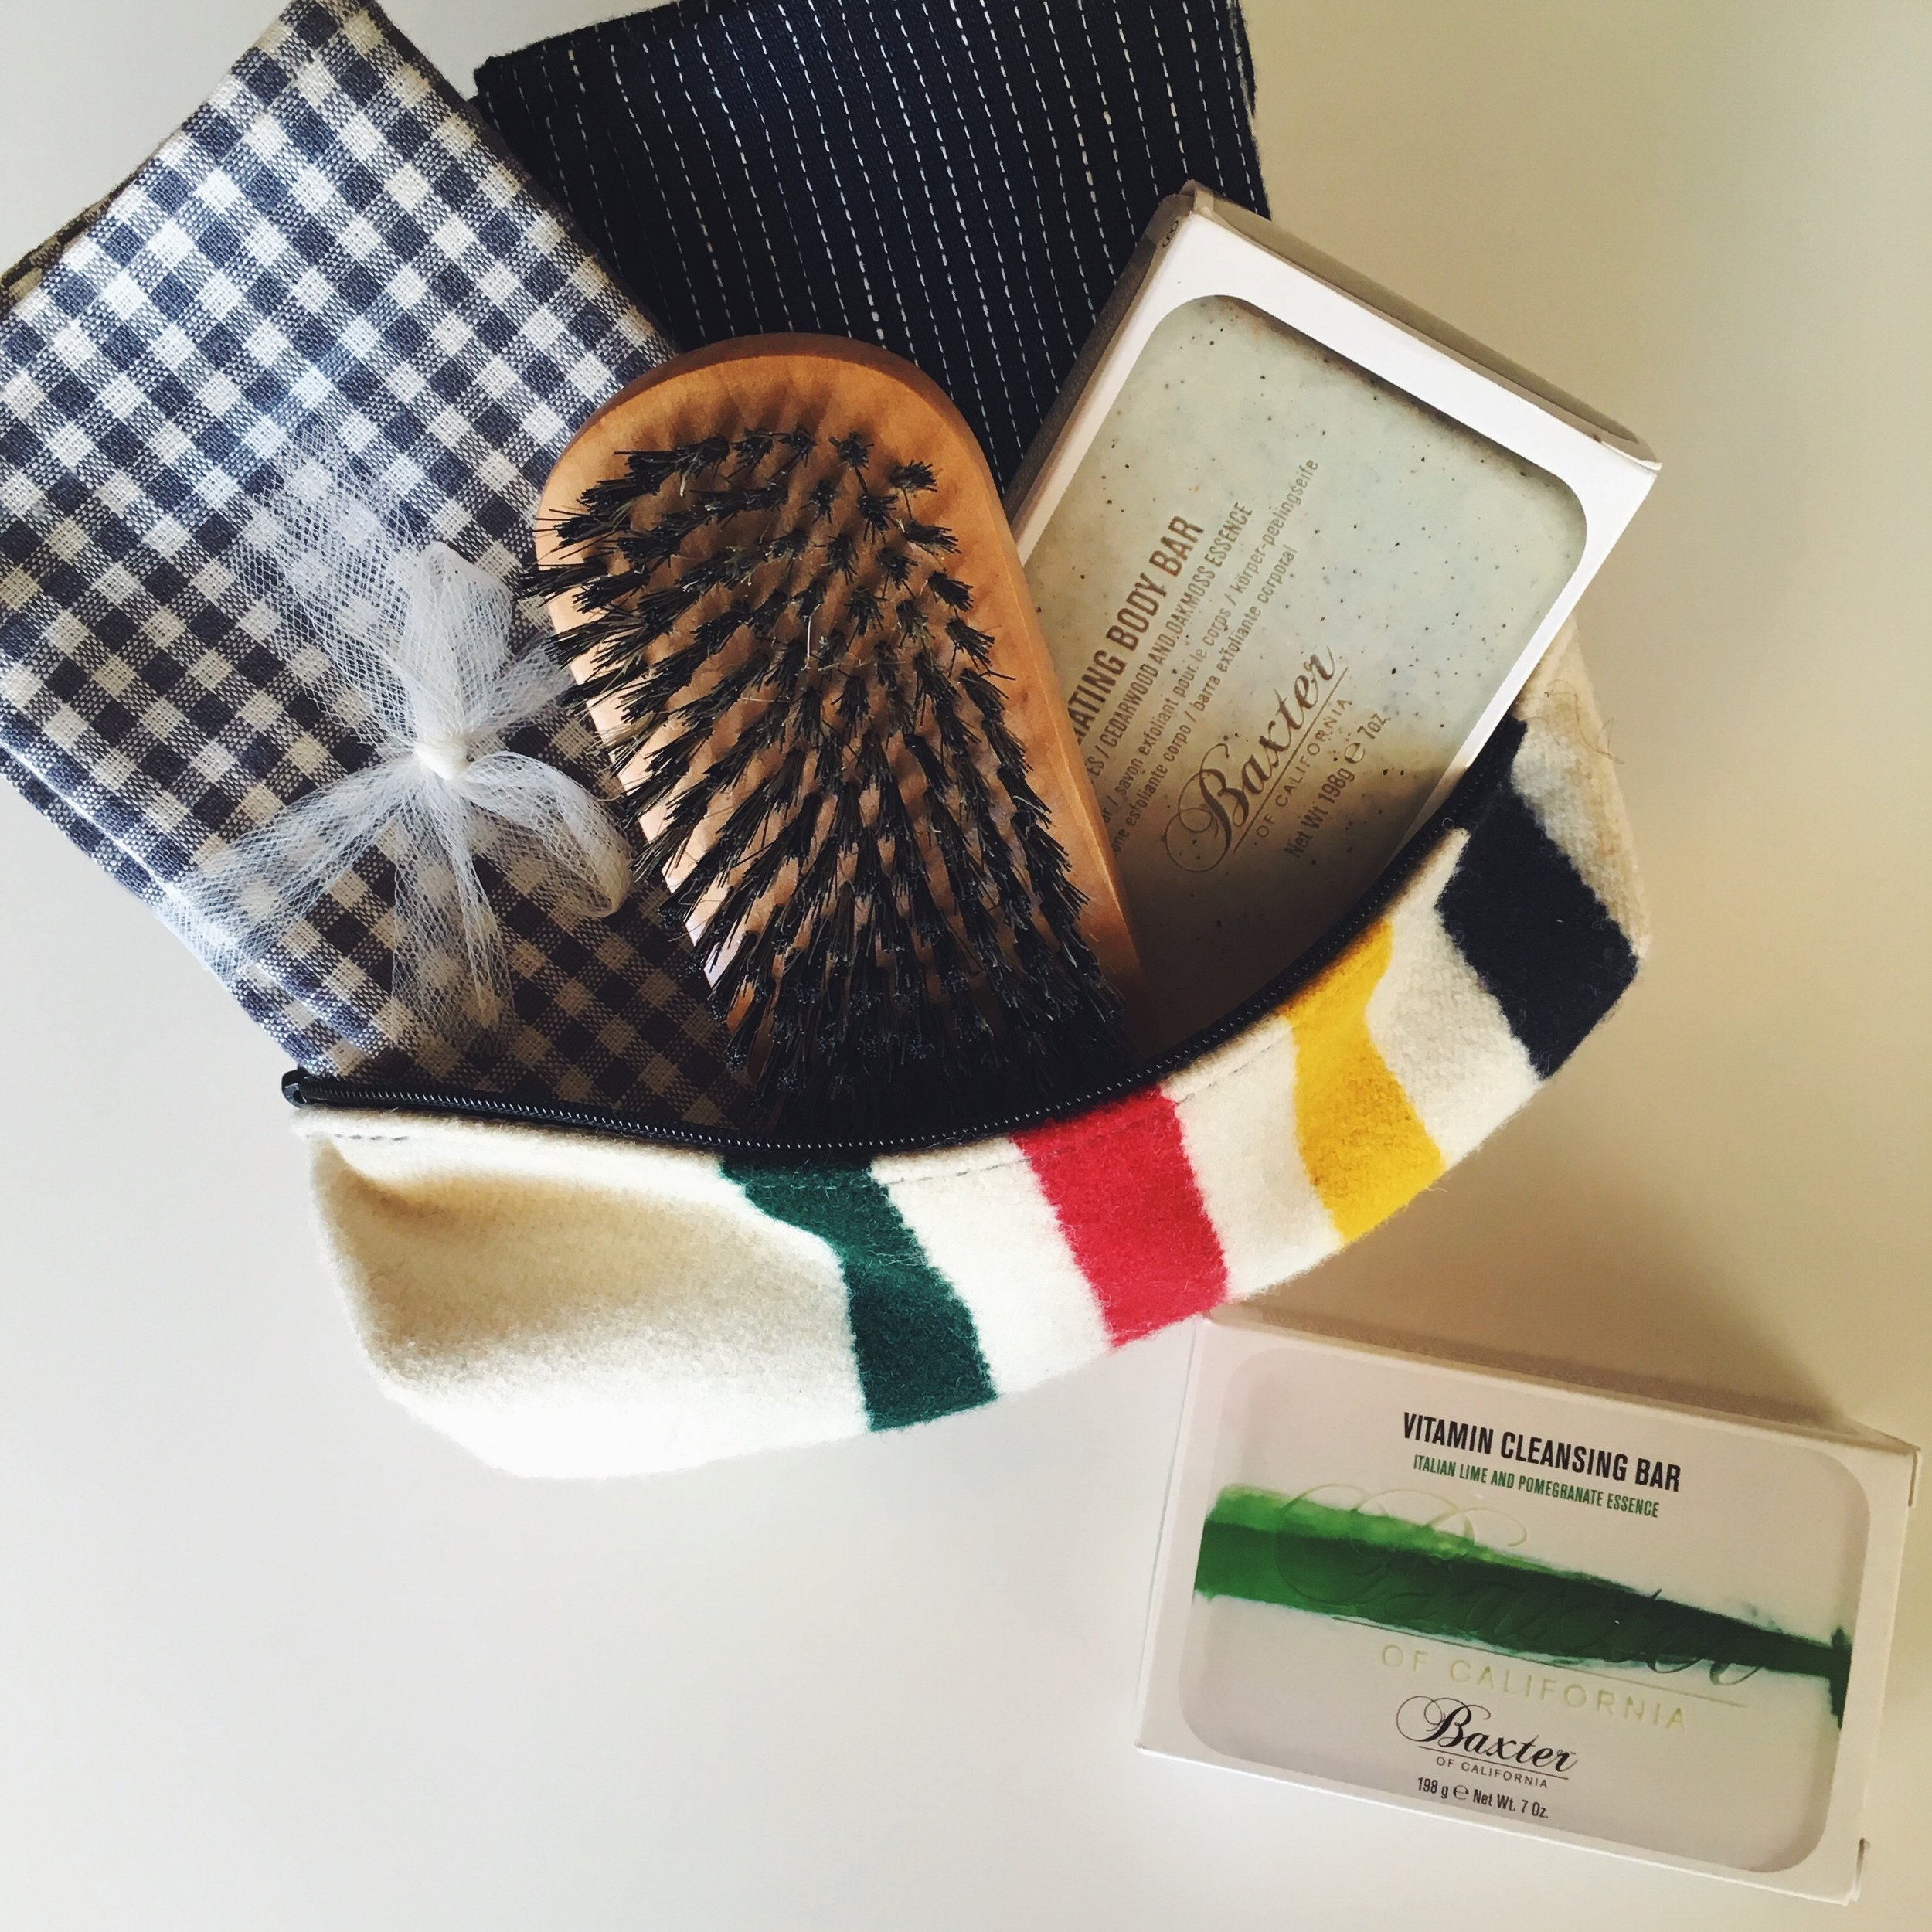 So dopp!  Pendleton wool dopp bags  make a handsome + useful gift. Fill one with skincare favorites.